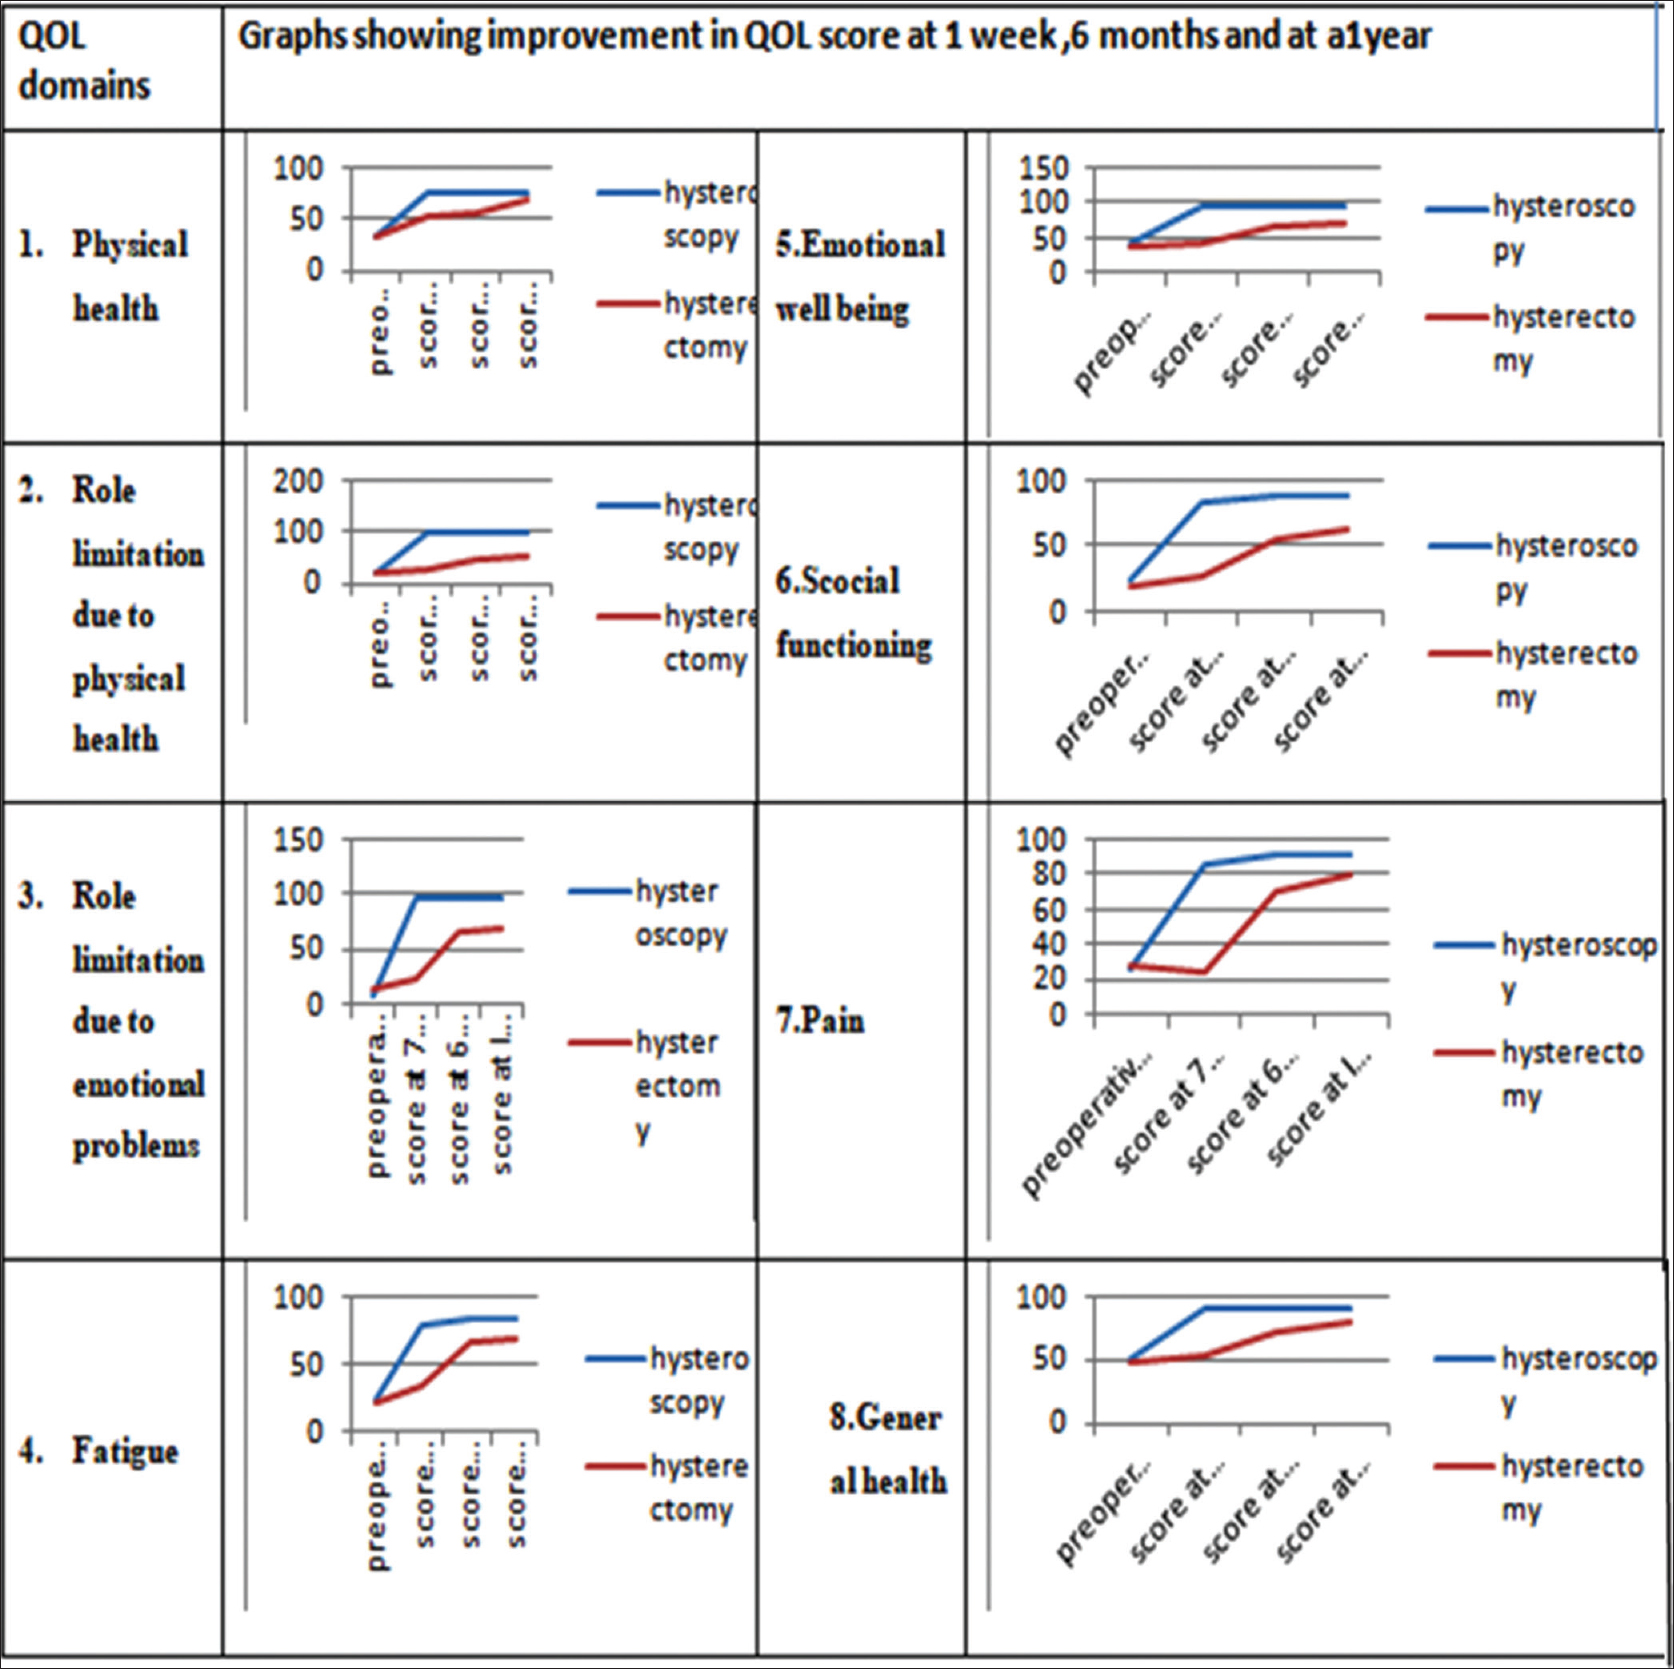 Figure 1: Graphs showing change on quality of life in all 8 domains at 1 week, 6 months, and 1 year postoperatively